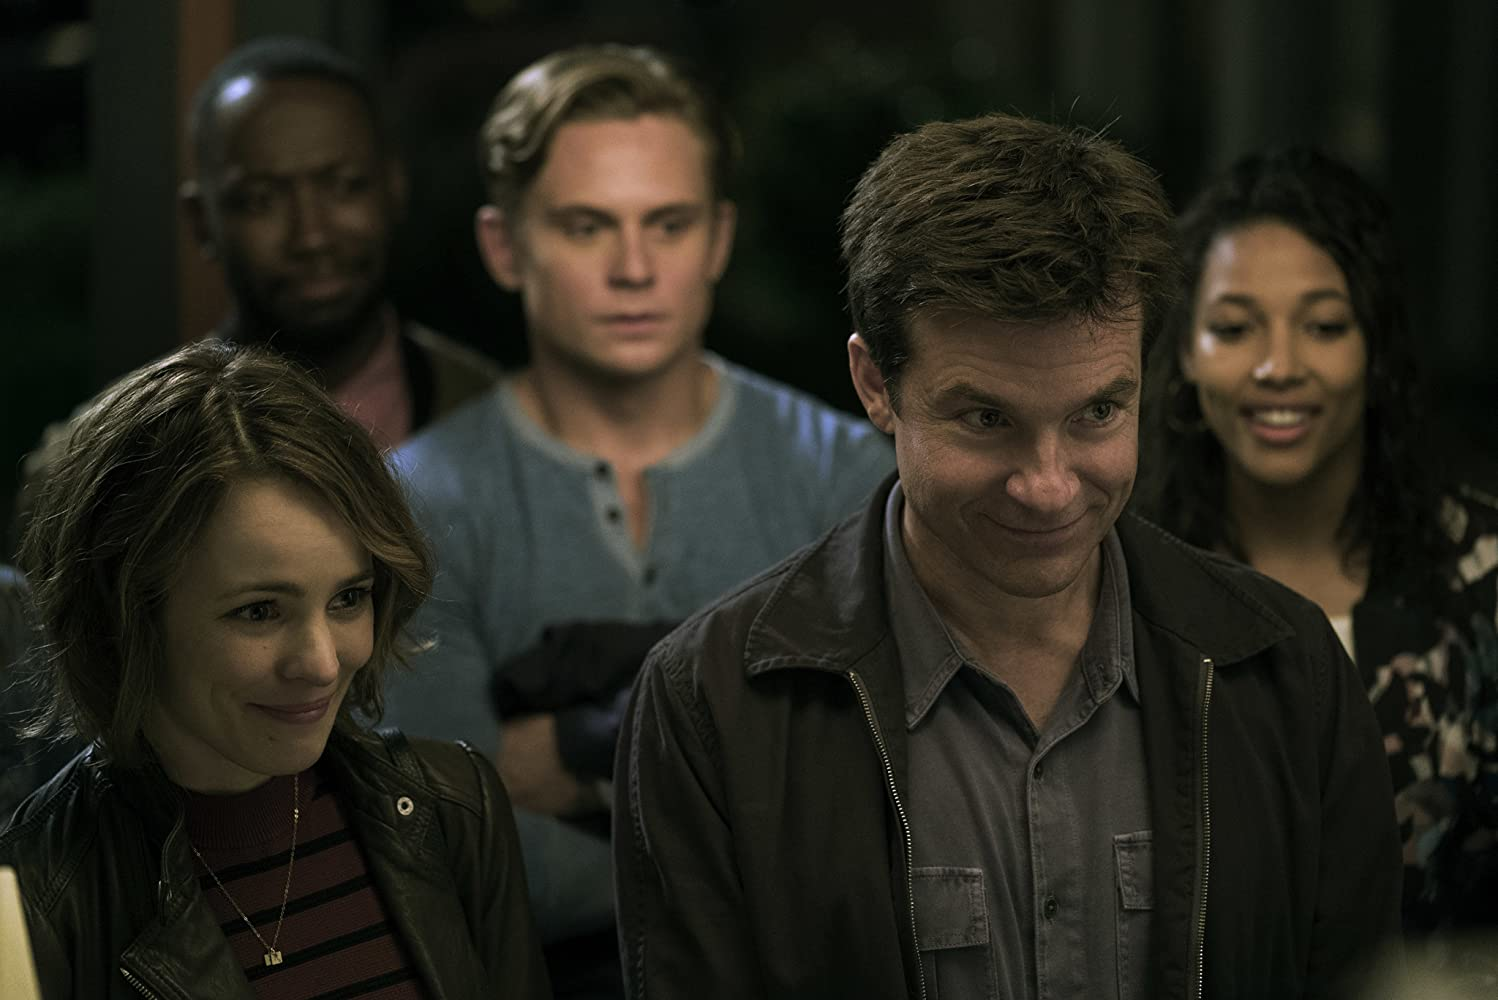 Jason Bateman, Rachel McAdams, Lamorne Morris, Billy Magnussen, and Kylie Bunbury in Game Night (2018)